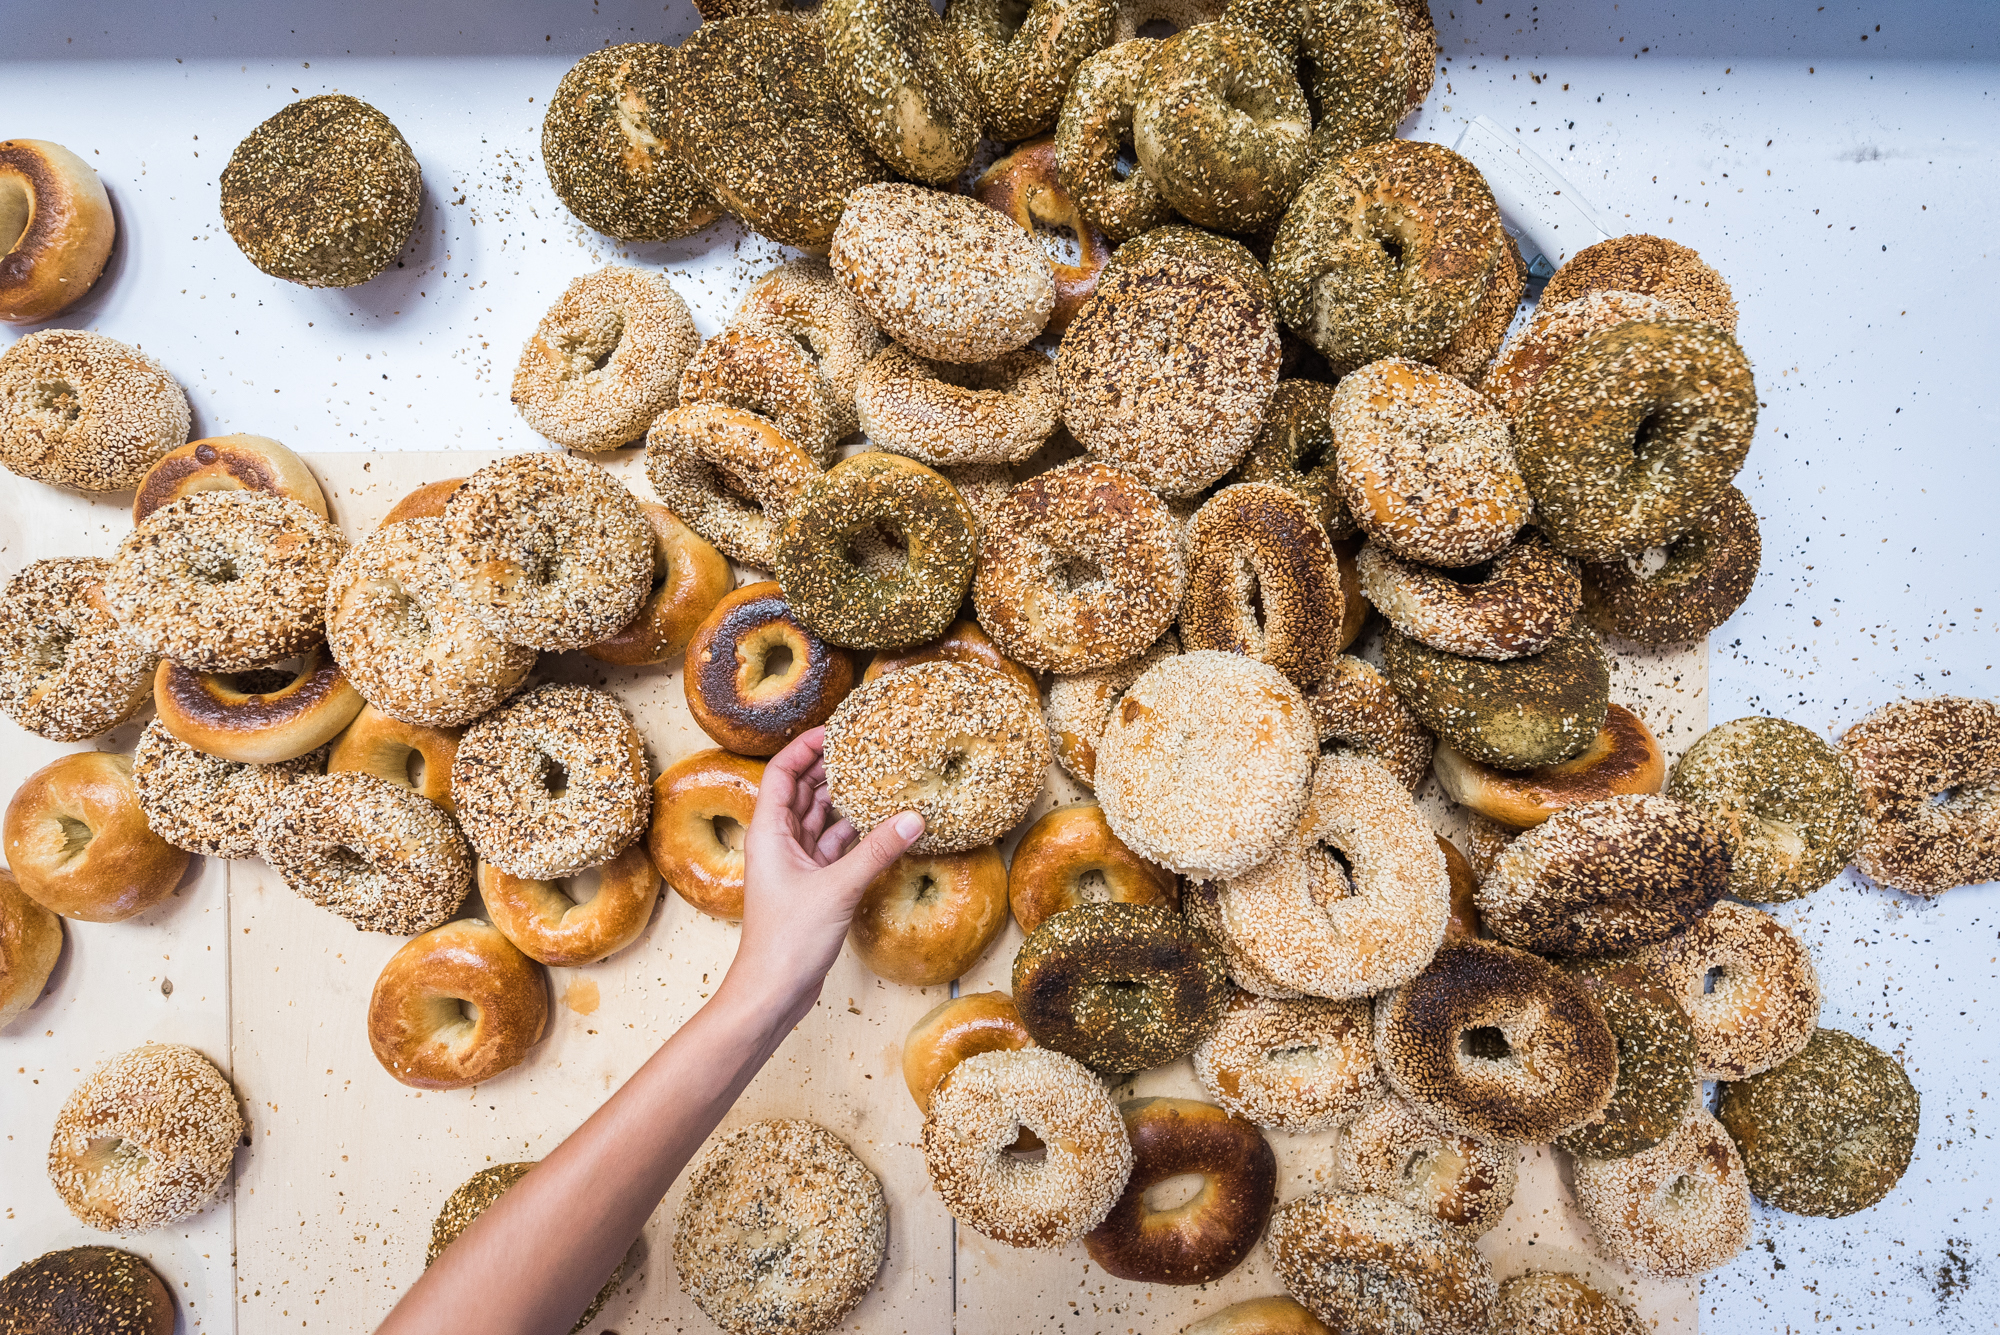 Bagels at Call Your Mother in Washington D.C.